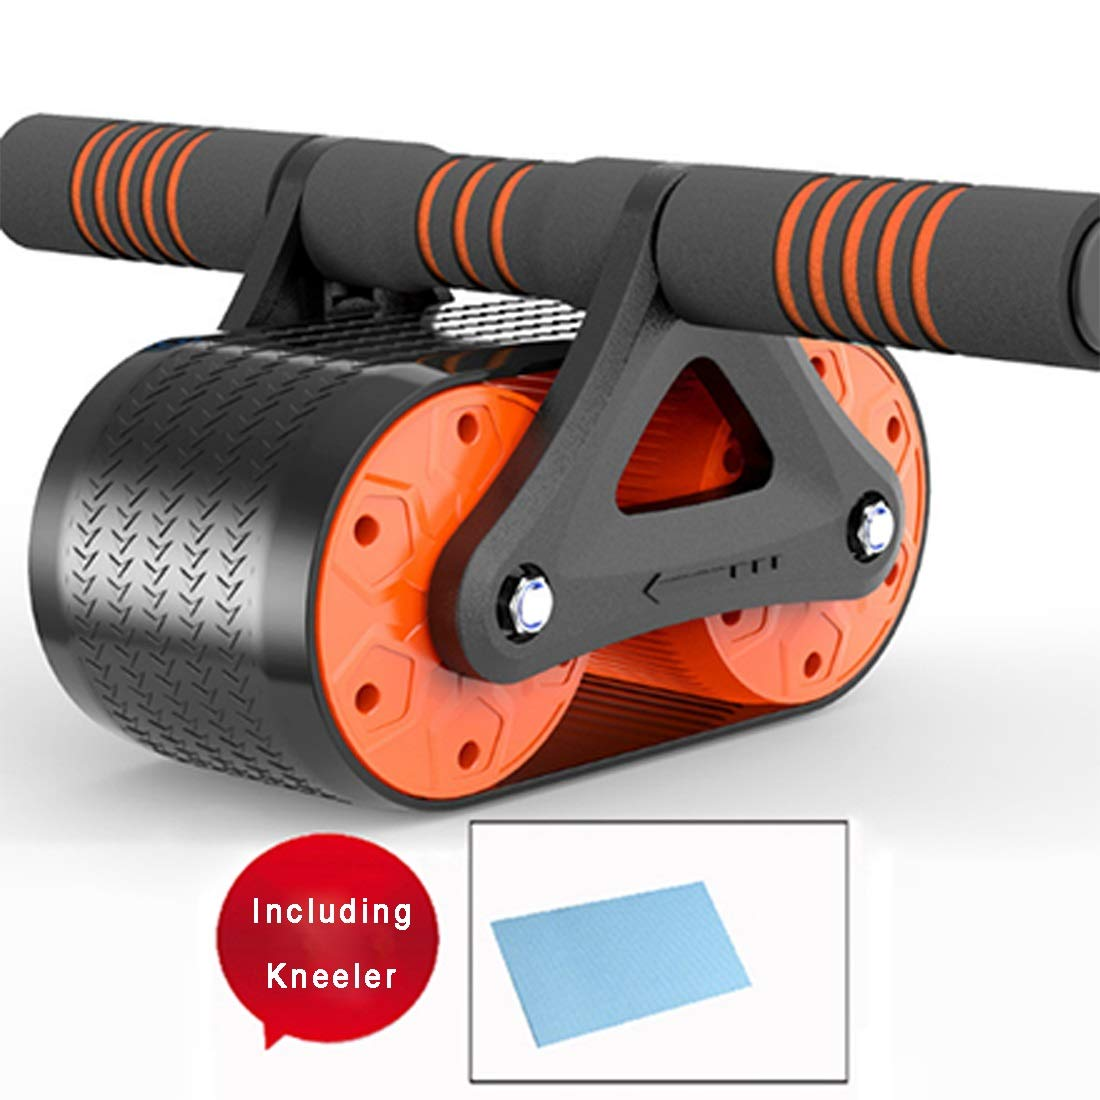 Sugoishop Roller Wheel for Abdominal Exercise Automatic Rebound Assistance and Resistance Springs with Ergonomic Handle Sold with Knee Pad (Color : Orange)